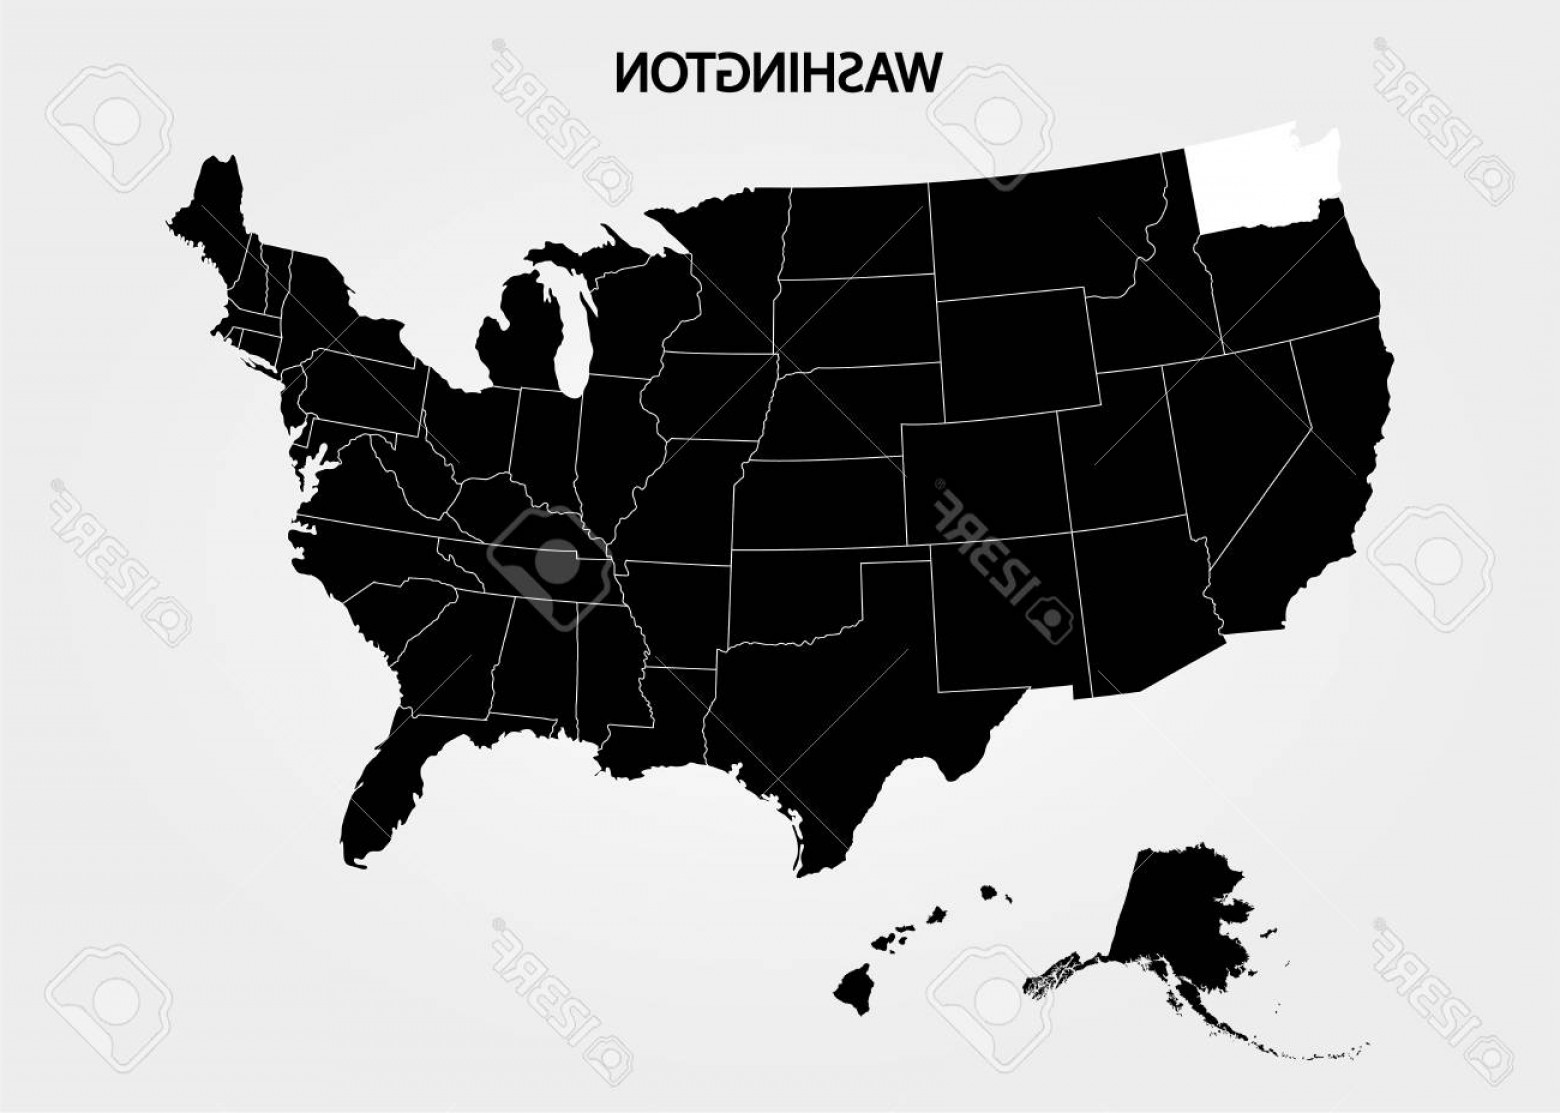 Washington State Vector: Photostock Vector Washington State States Of America Territory On Gray Background Separate State Vector Illustration